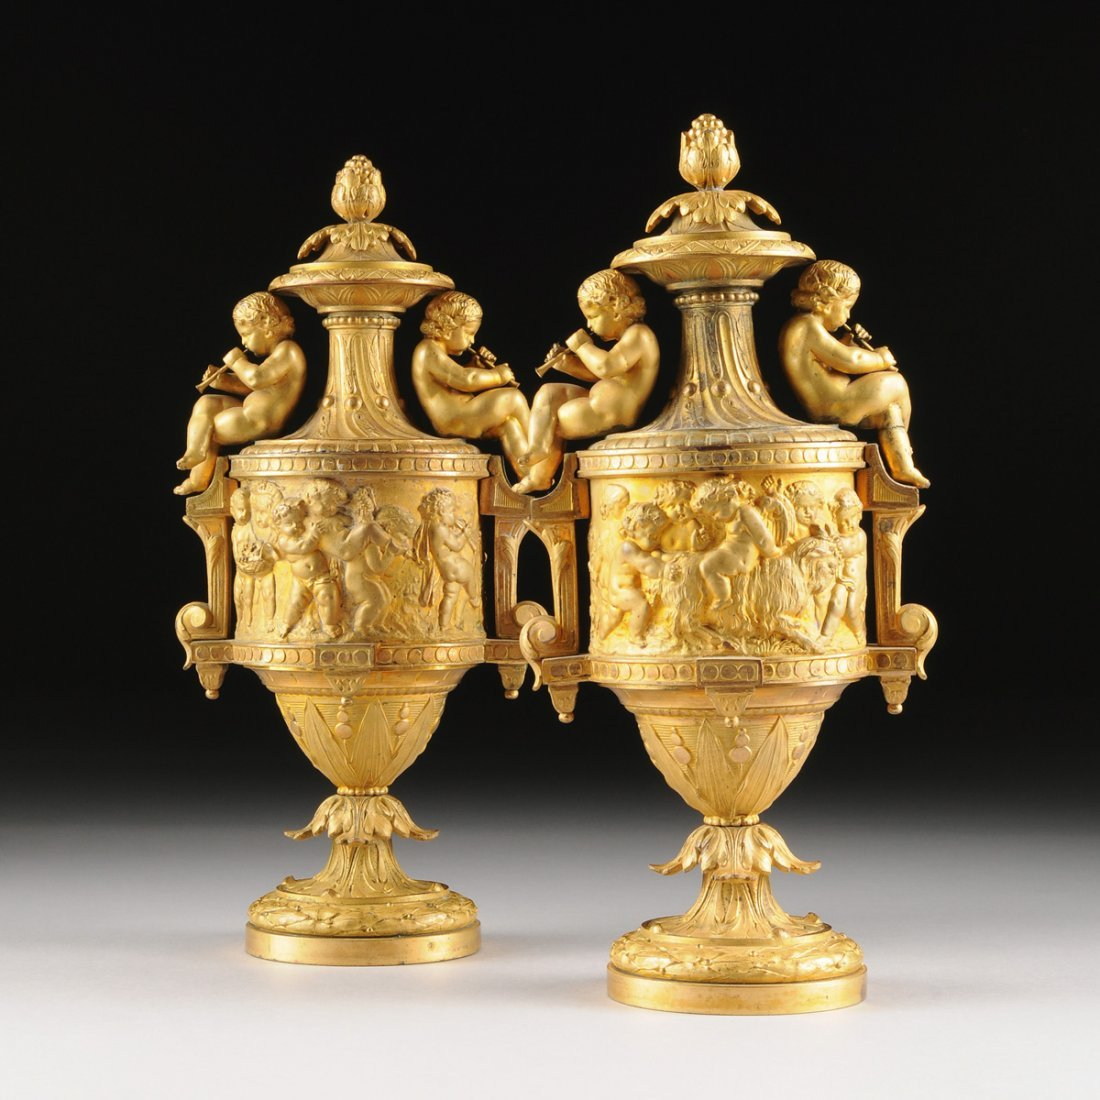 A PAIR OF LOUIS XVI STYLE BURNISHED AND MATT GILT